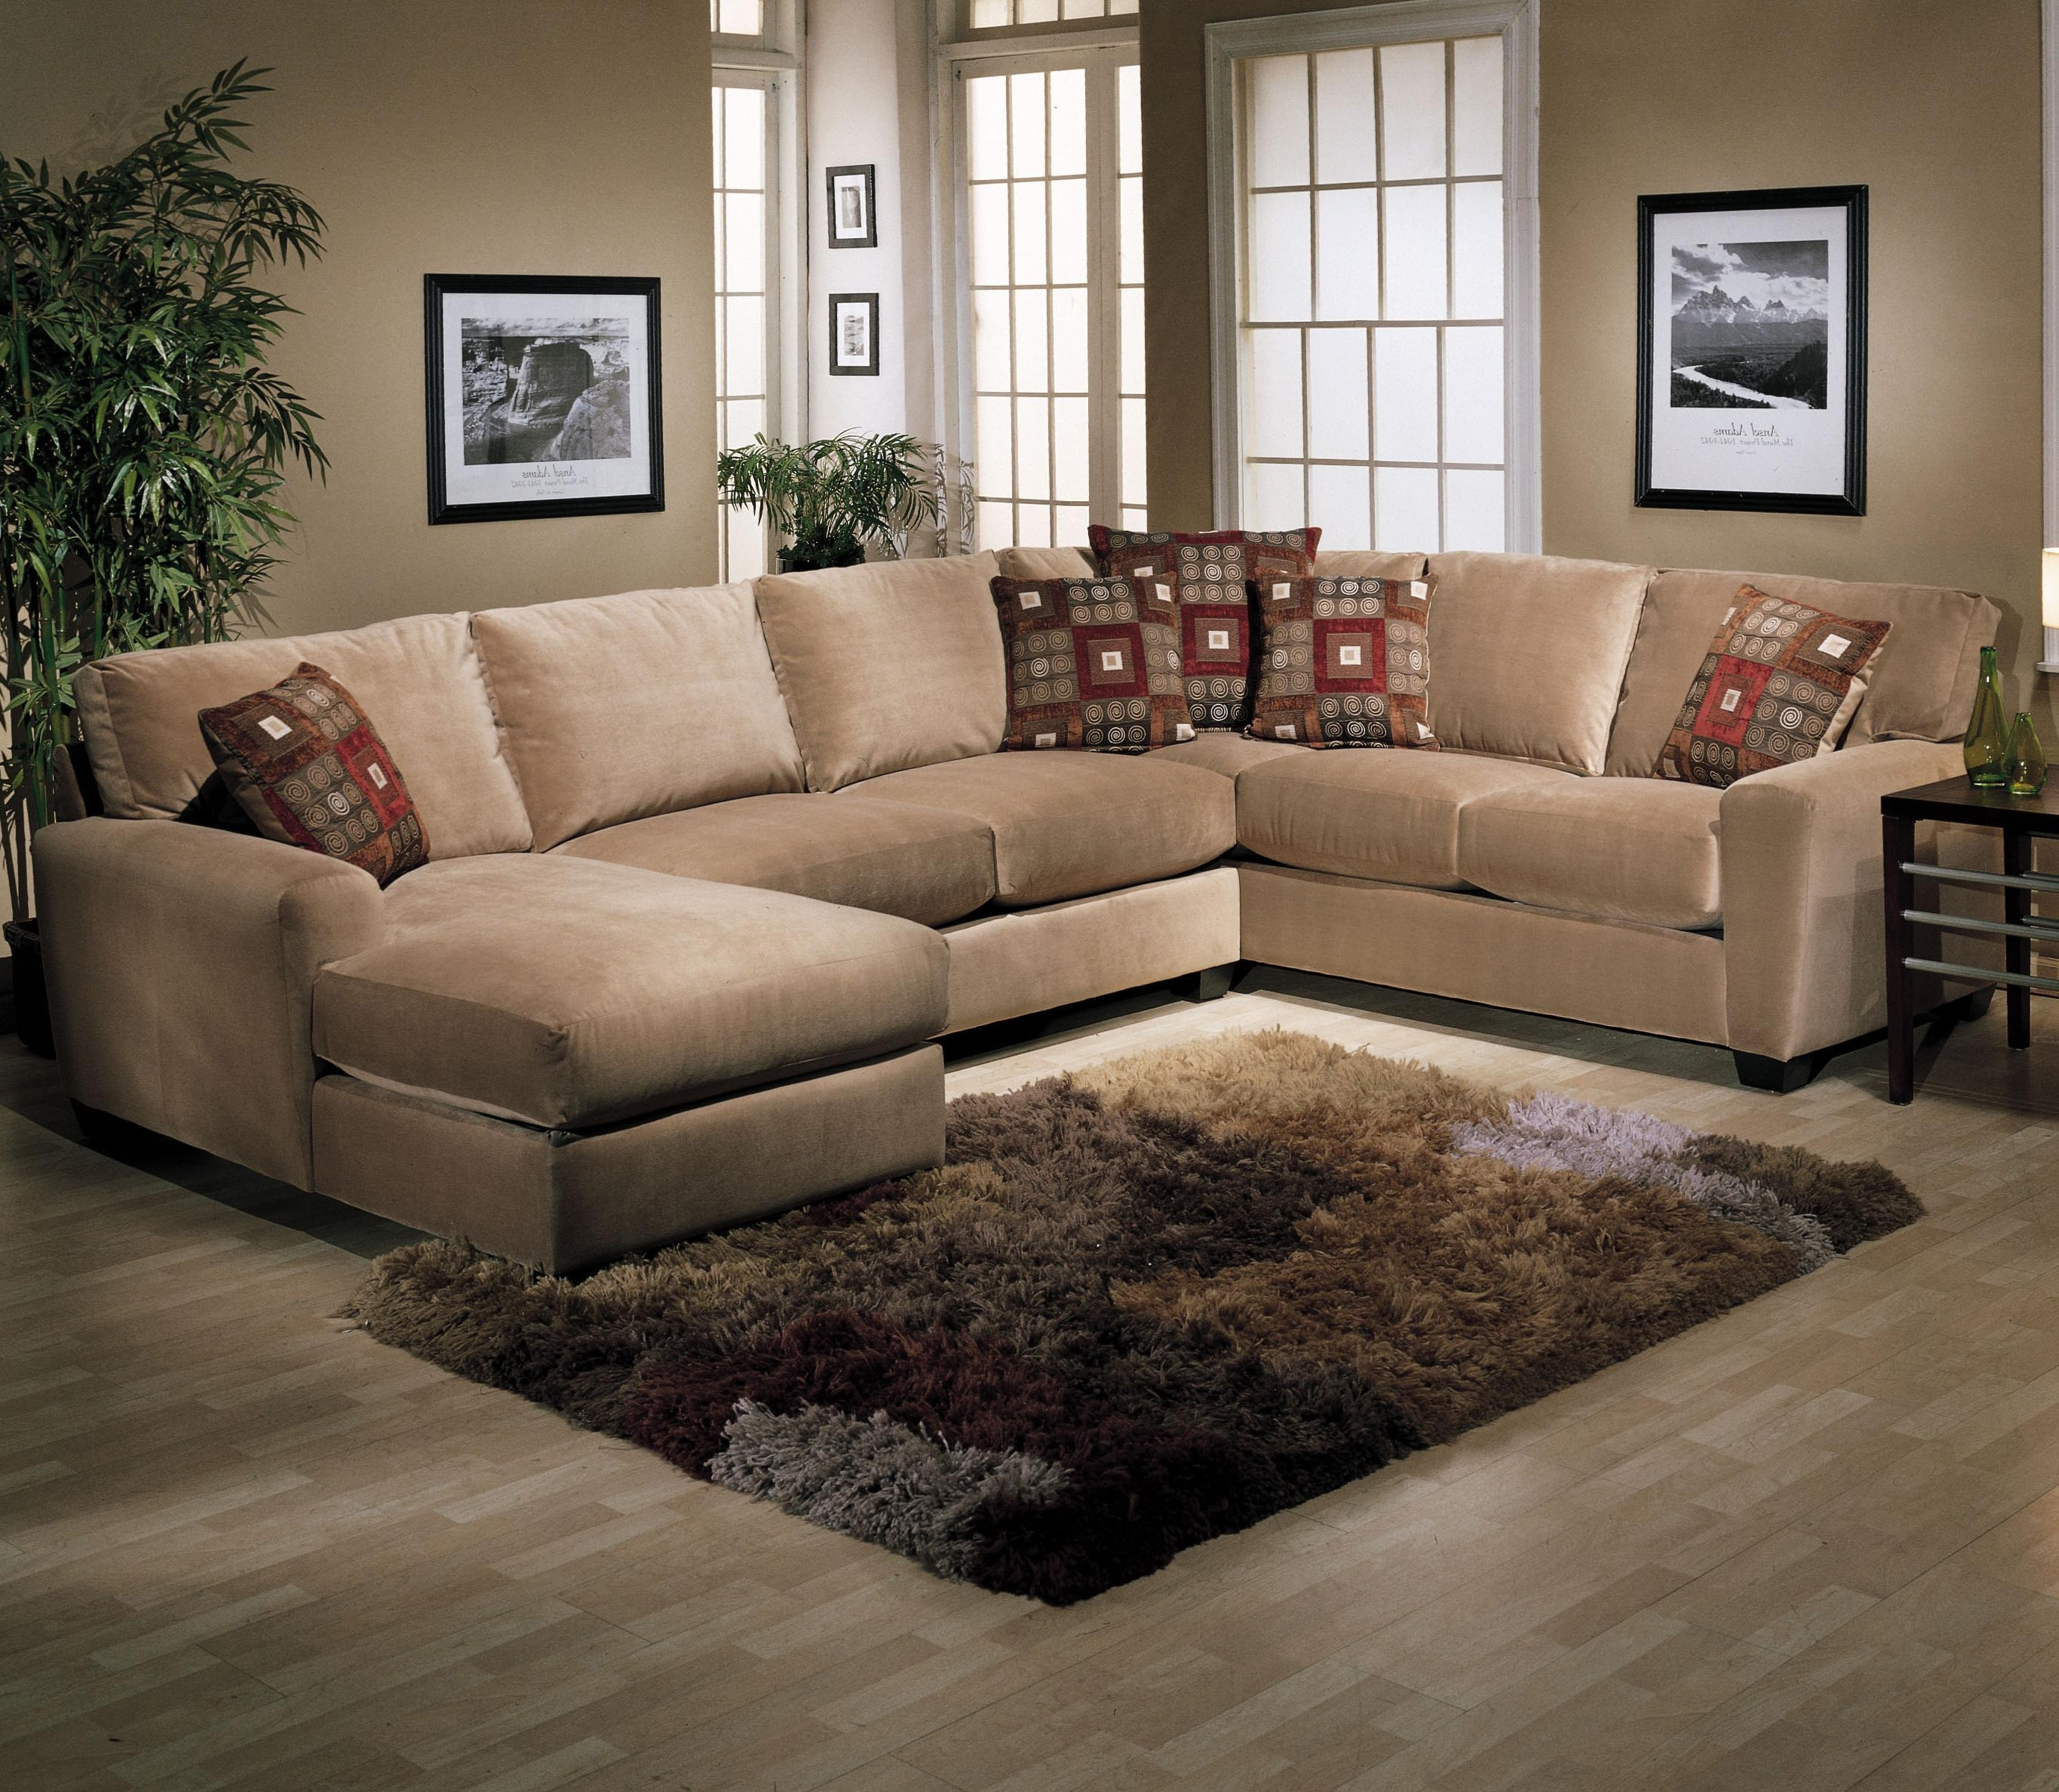 2018 L Shaped Sofa With Chaise Lounge – Home And Textiles Inside L Shaped Couches With Chaise (View 1 of 15)